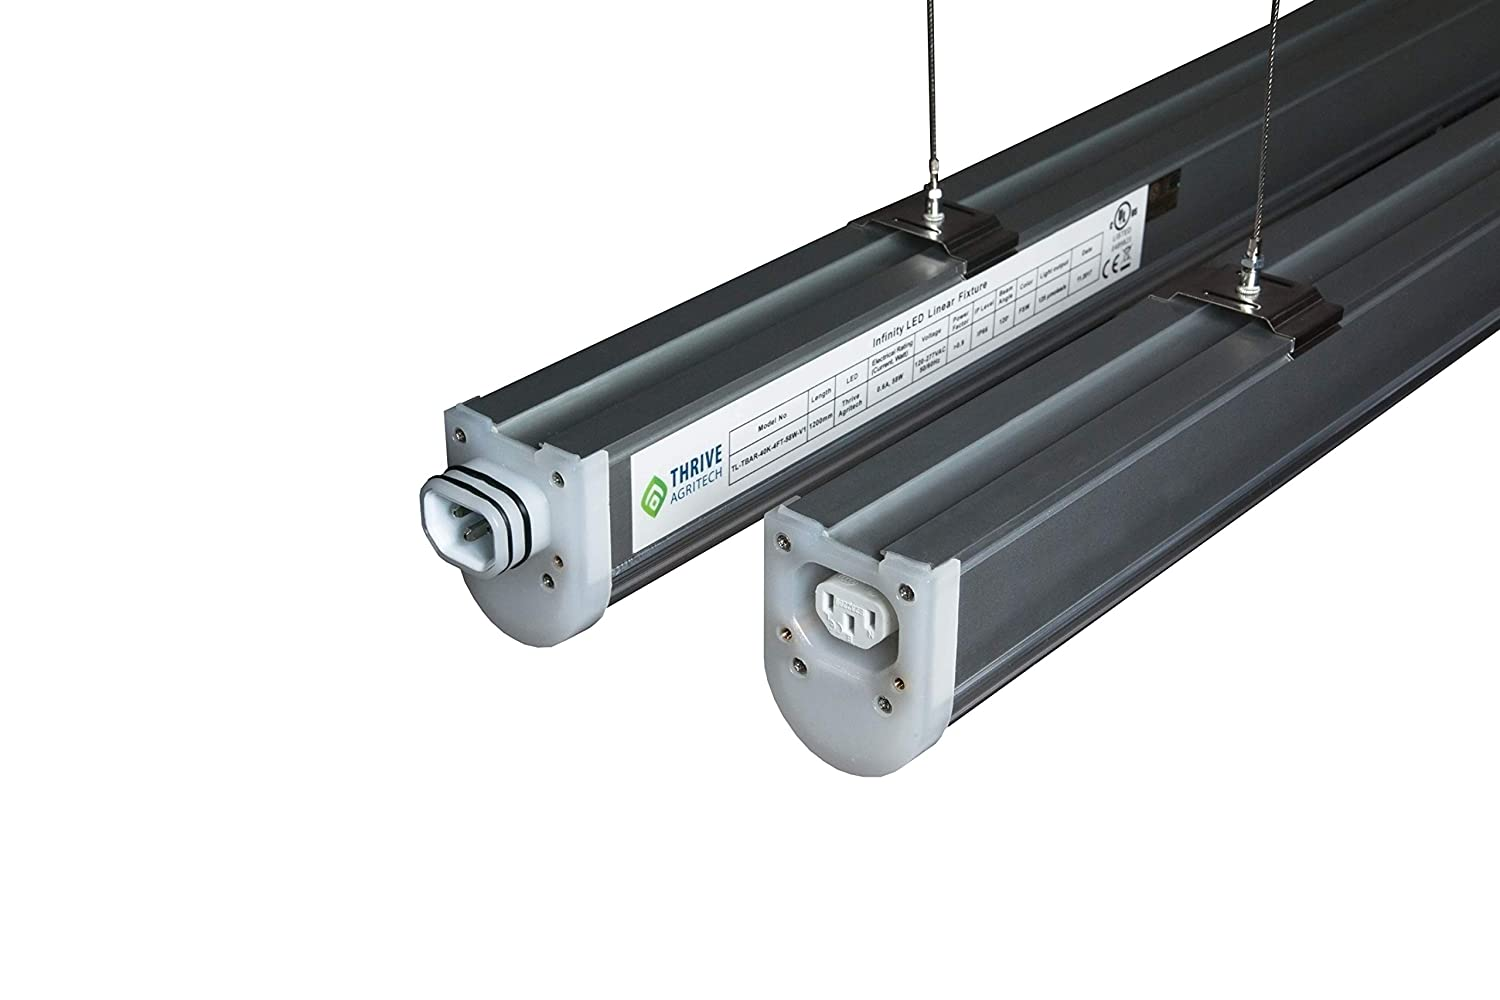 Thrive Agritech Infinity Linear LED Grow Light bar, 58W and Waterproof. Daisy Chain up to 12 fixtures with a Single Plug